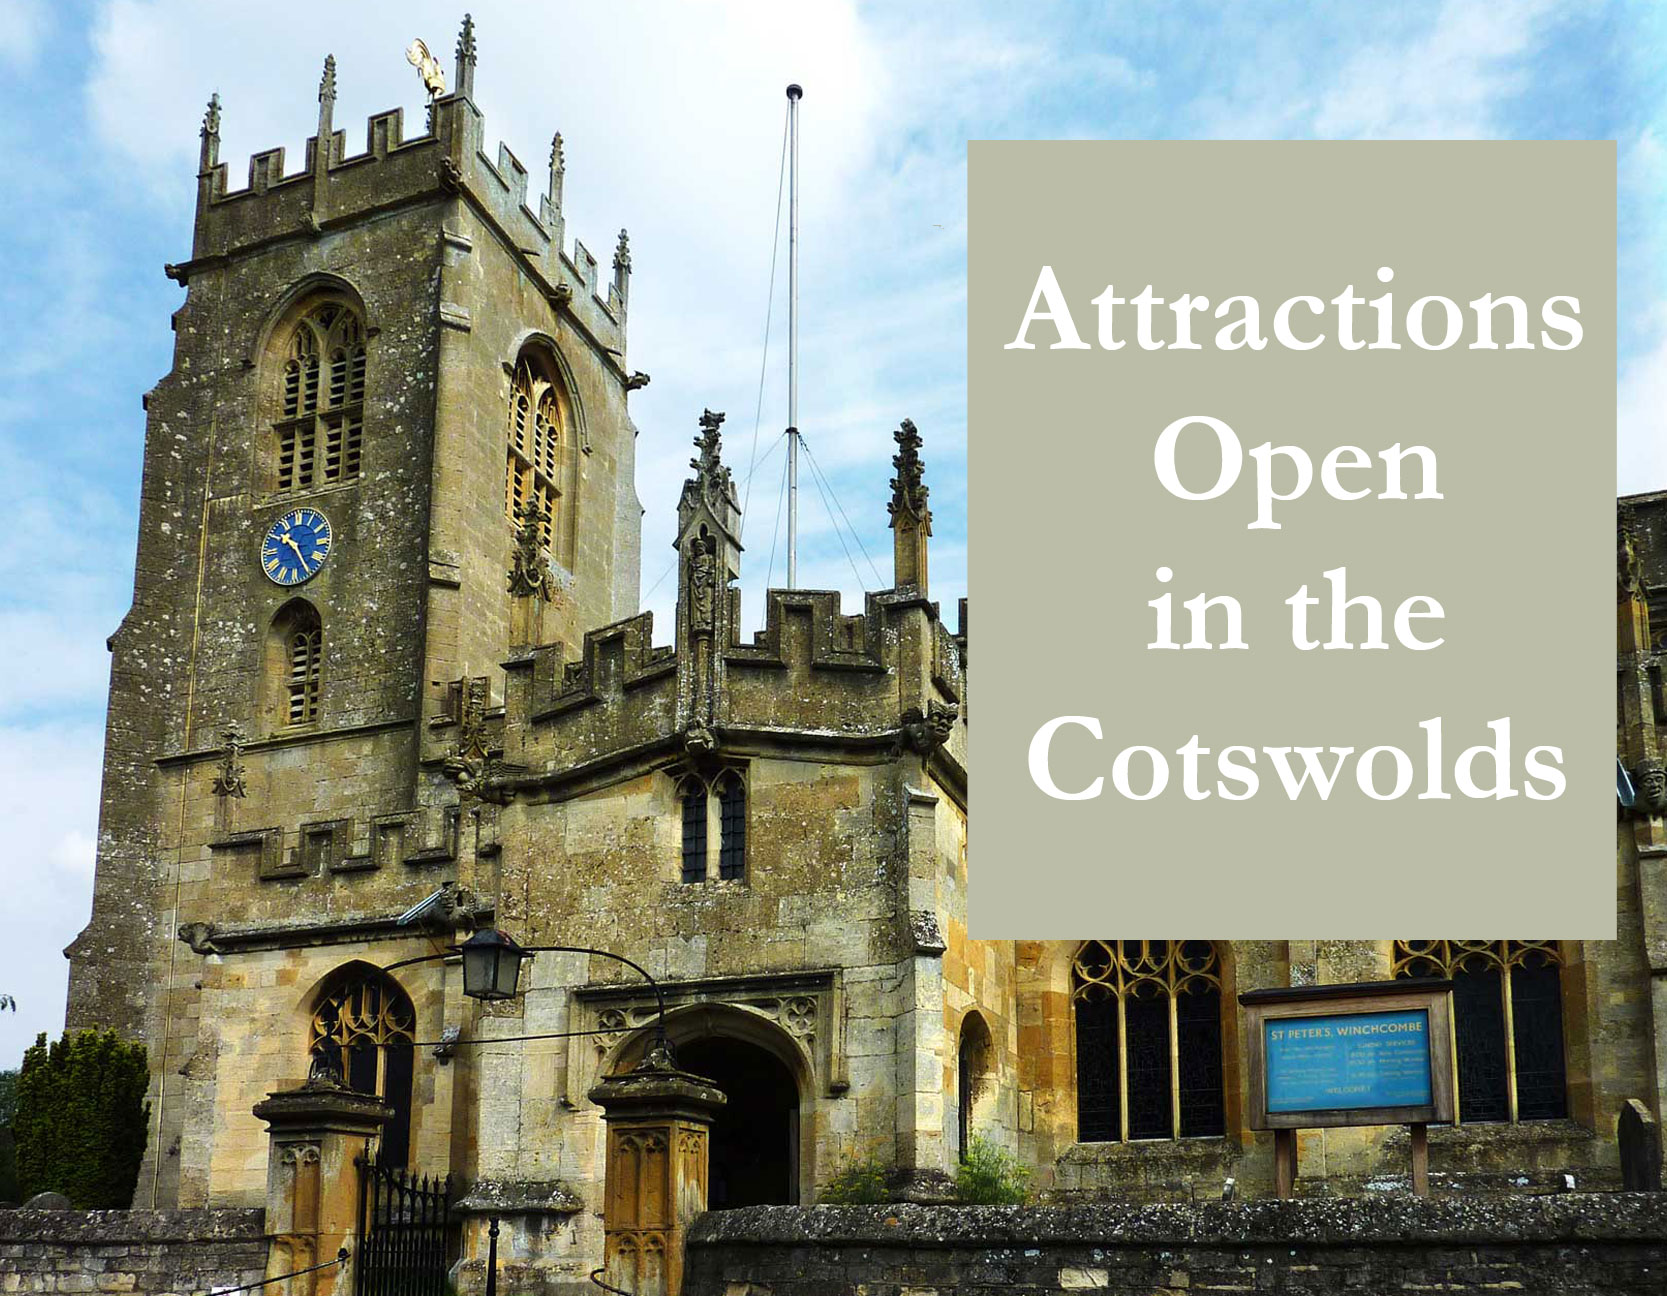 Attractions Open in the Cotswolds